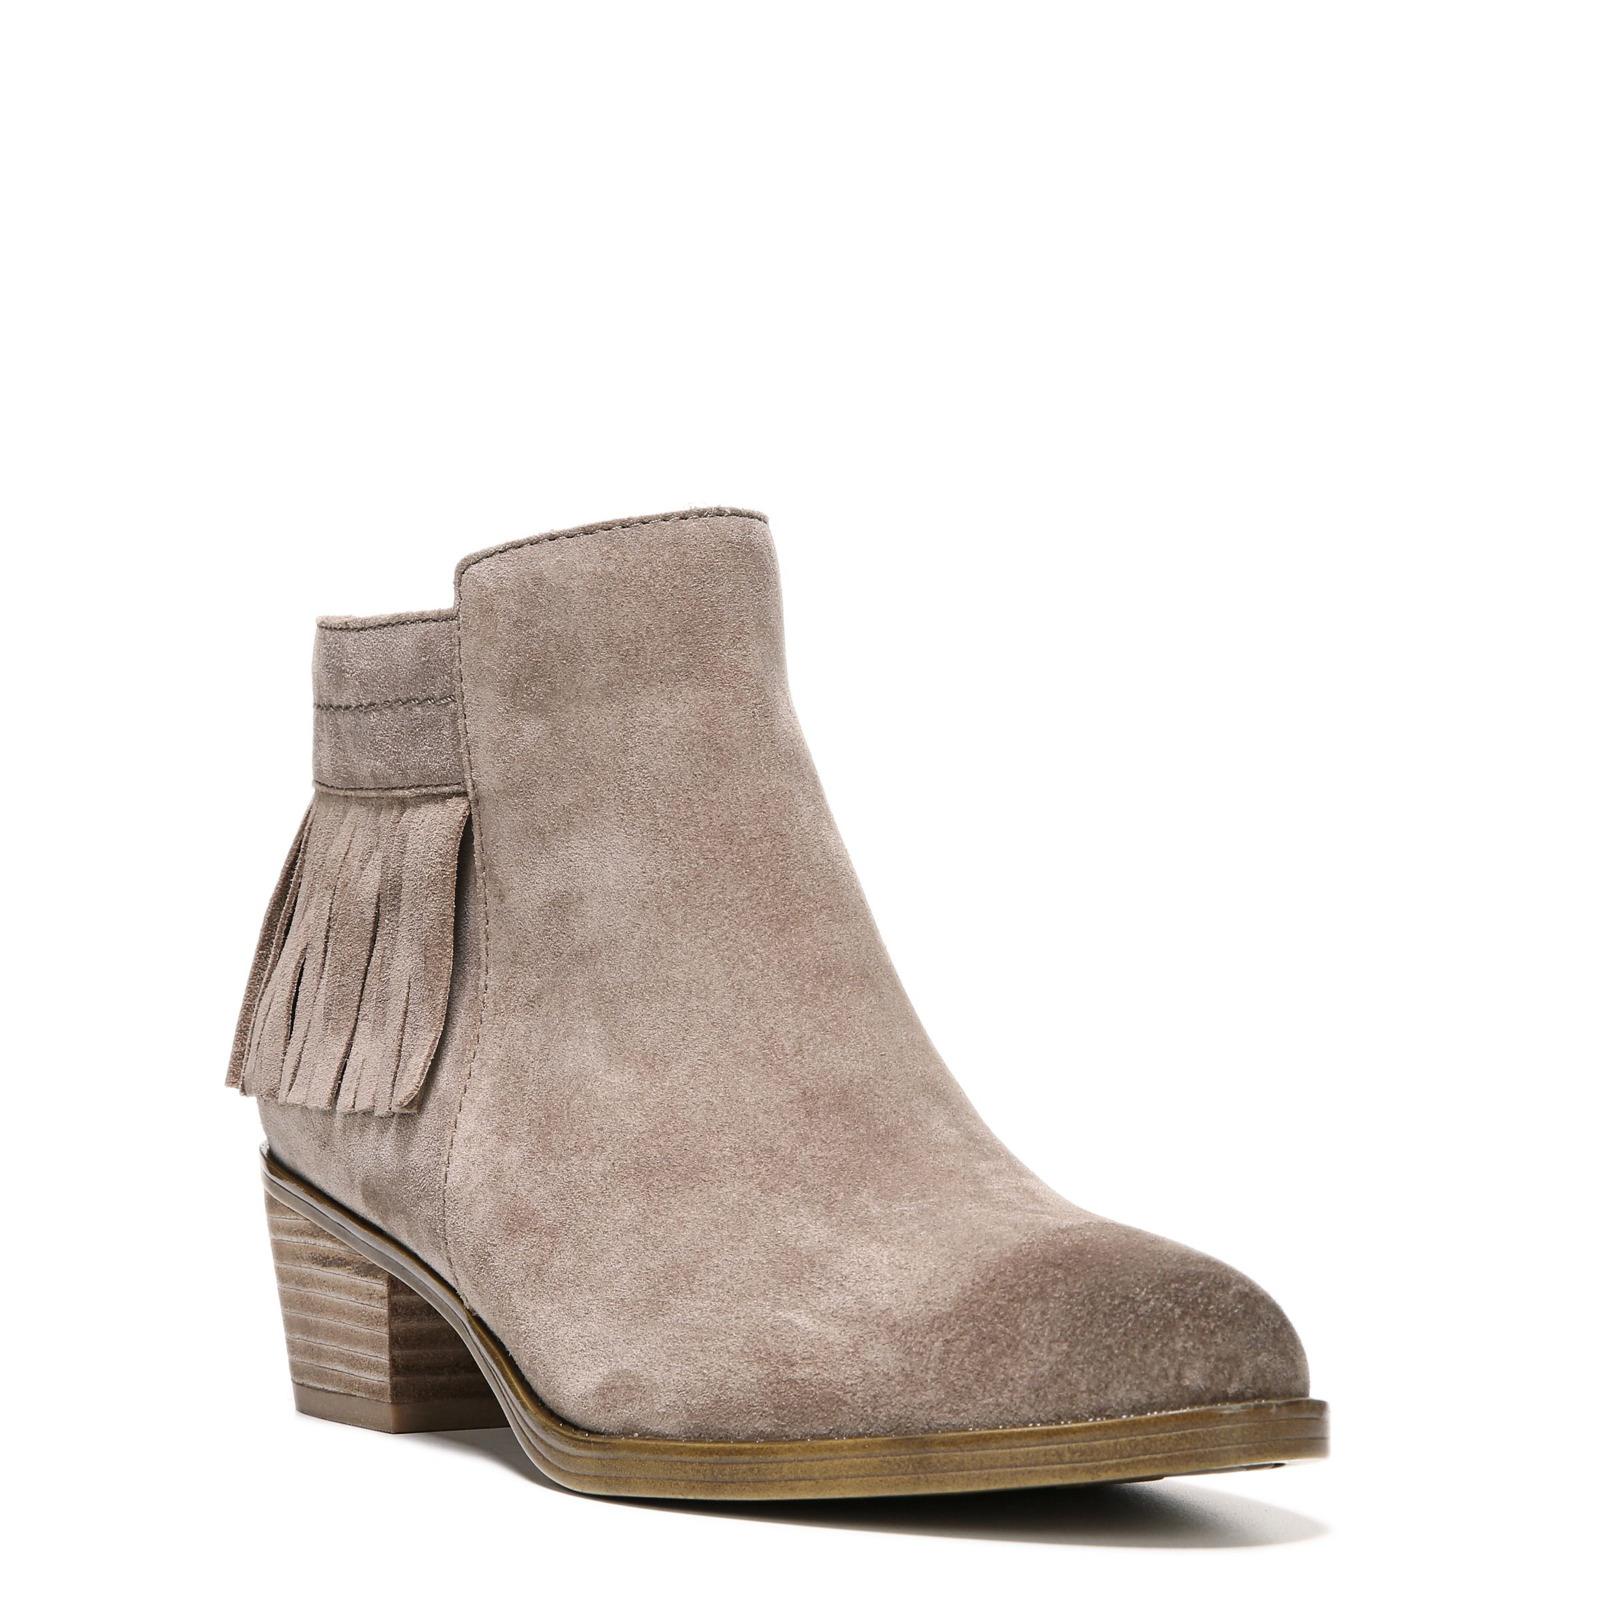 Women's Naturalizer Zeline Bootie Taupe Size 4 #NK56G-M437